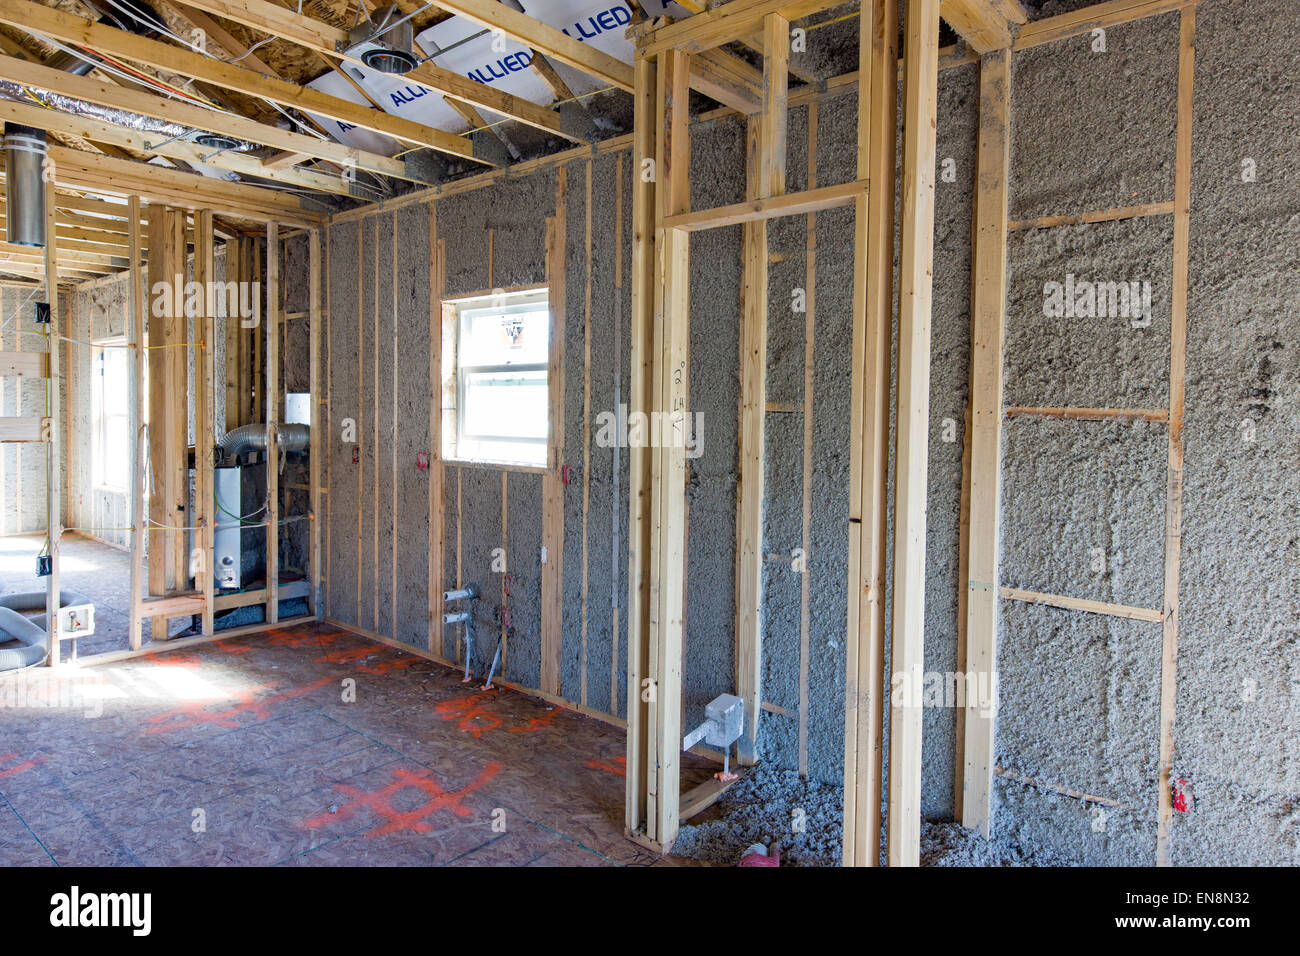 Should I Insulate Interior Walls (Umm, No)?